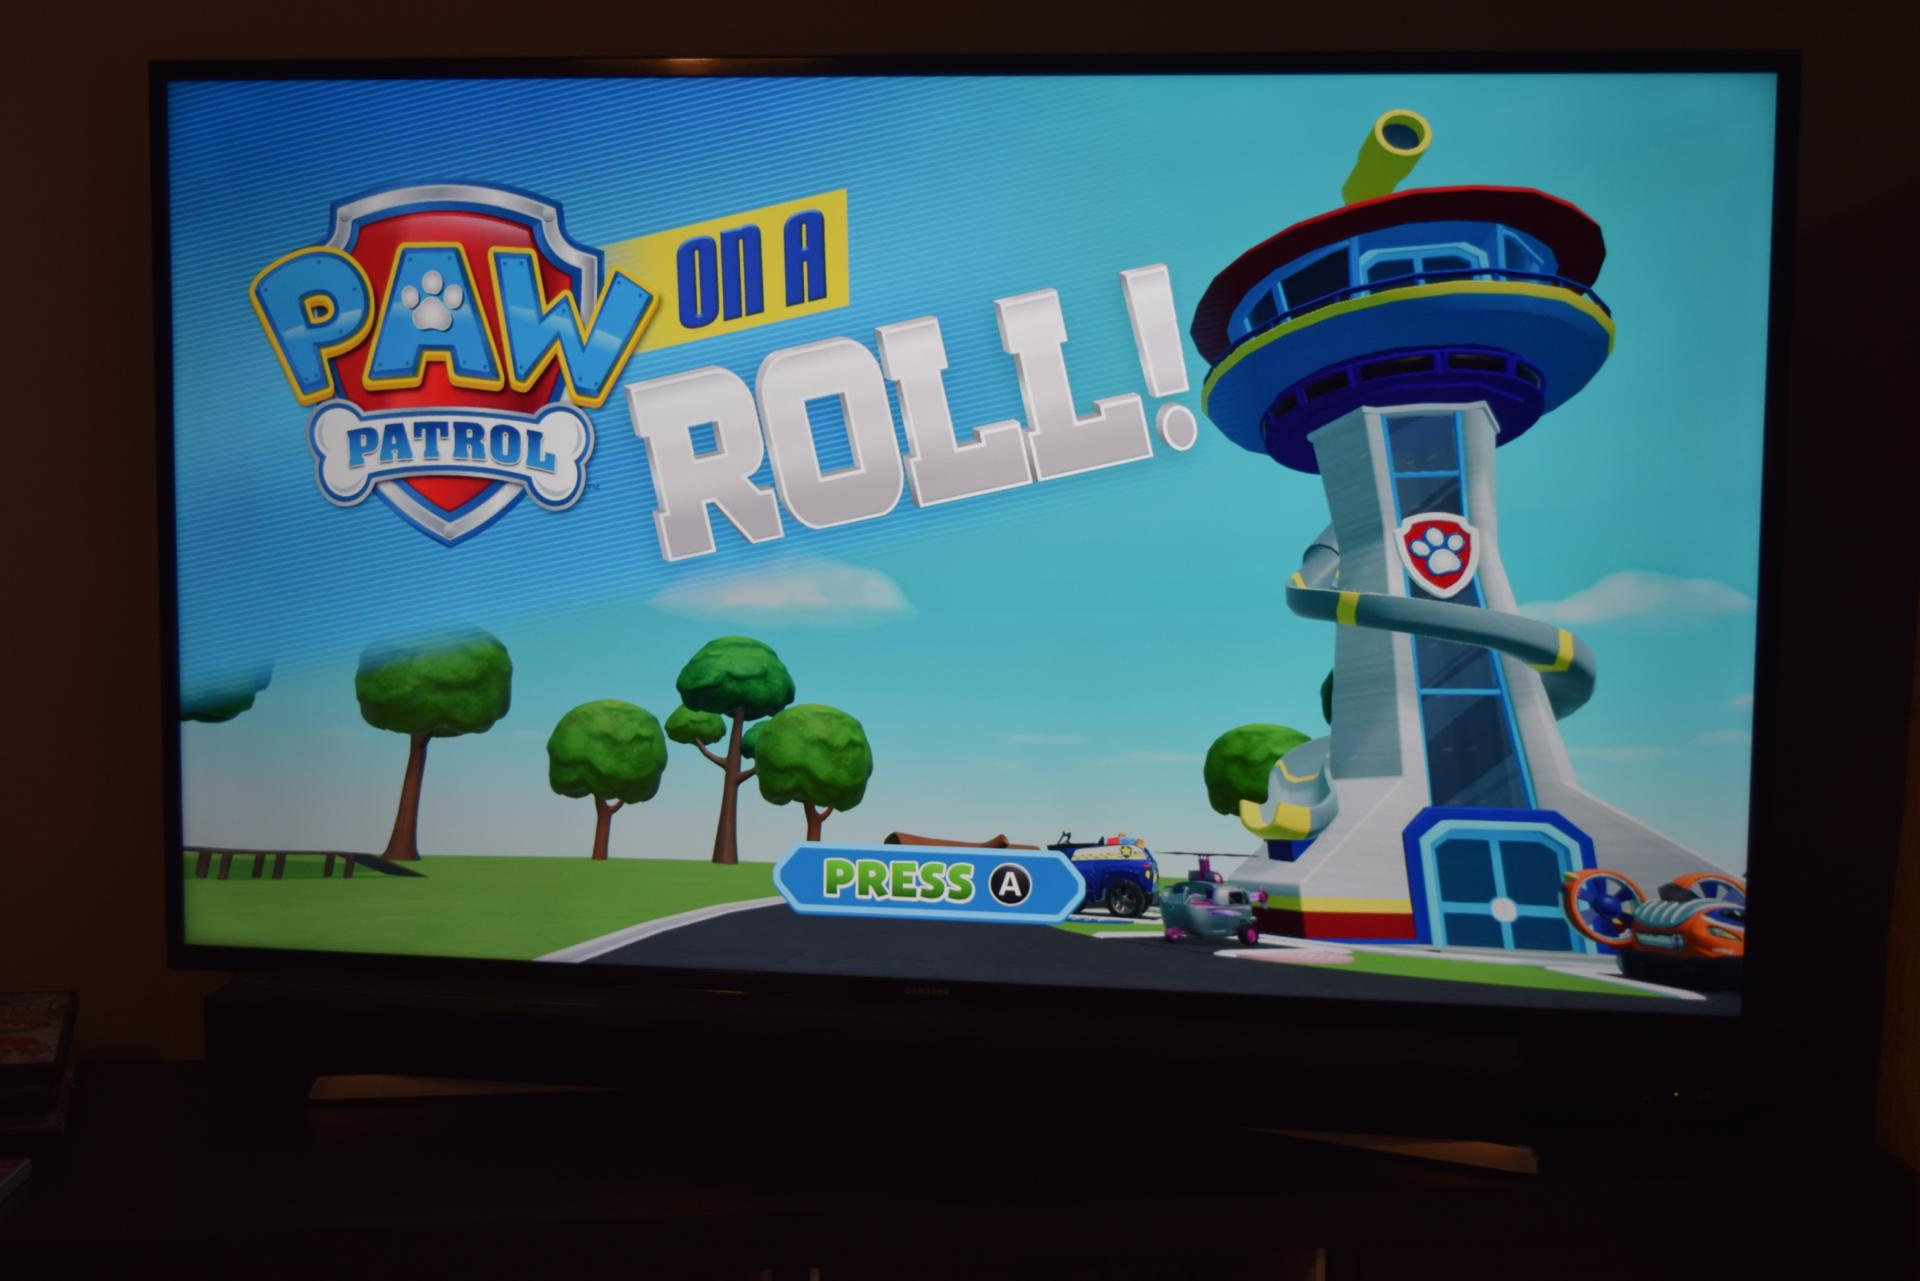 Paw Patrol on a Roll game